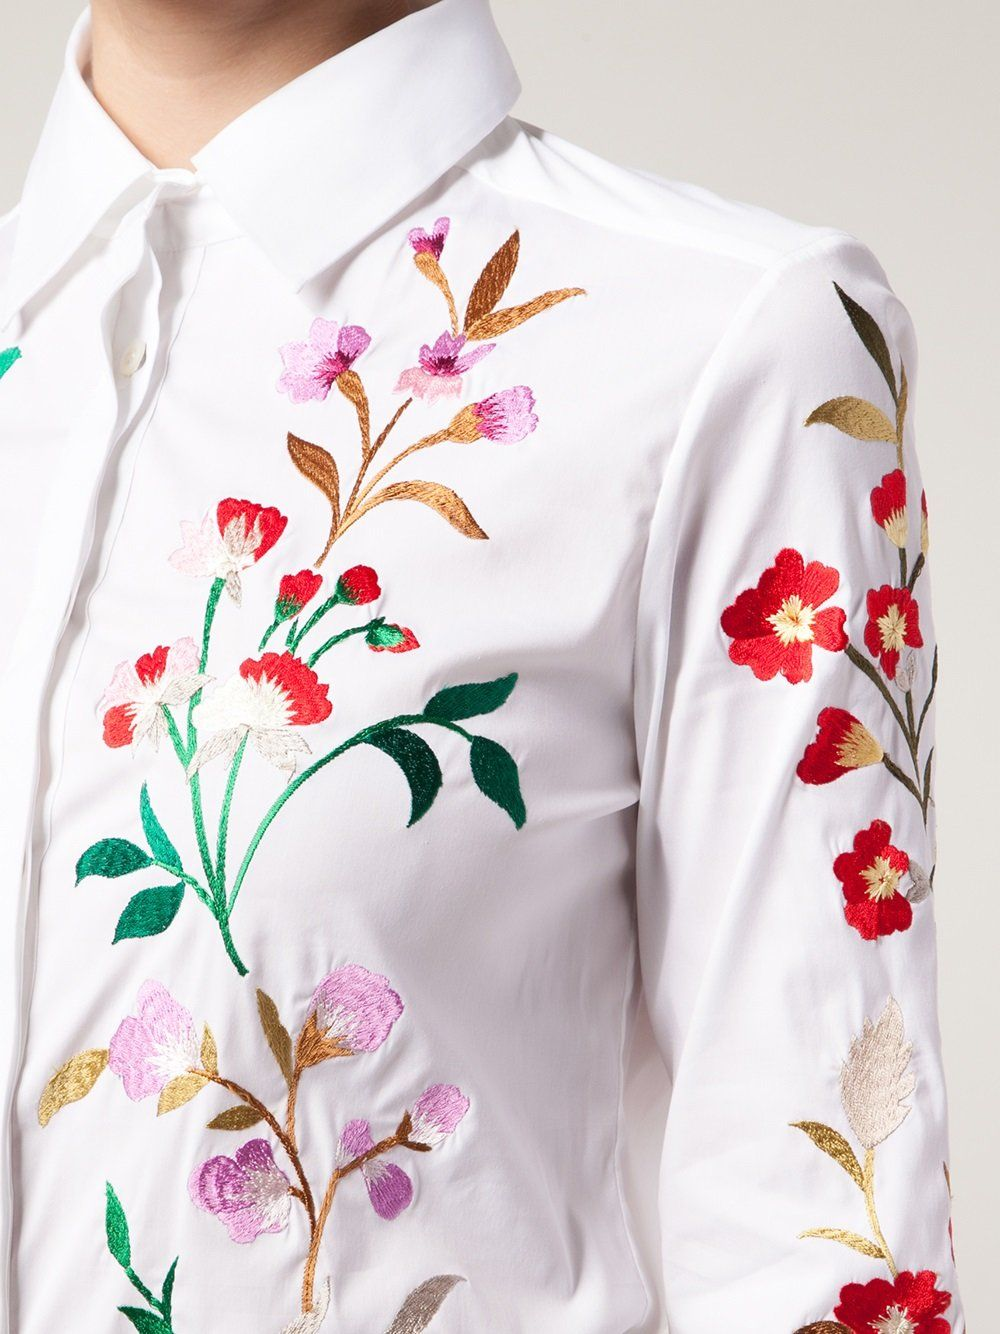 Oscar de la Renta floral embroidered shirt | blusas bordadas ...